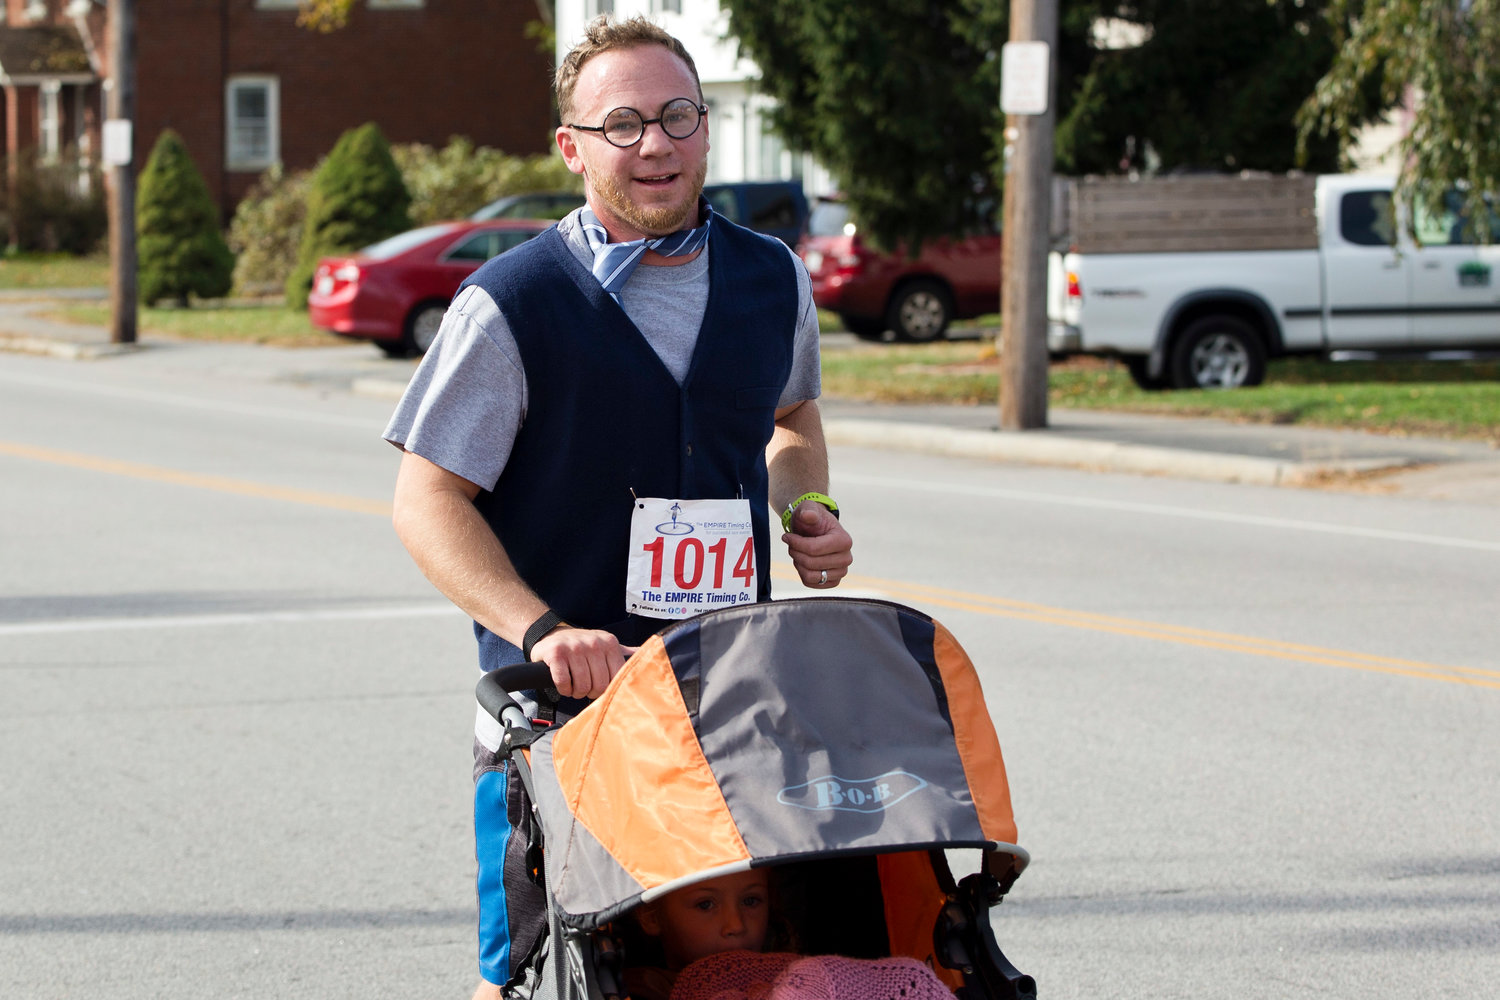 Riverside Middle School cross-country coach Brandyn Chace races toward the finish line dressed as Harry Potter while participating in the East Providence Firefighters Freaky 5k, Sunday.